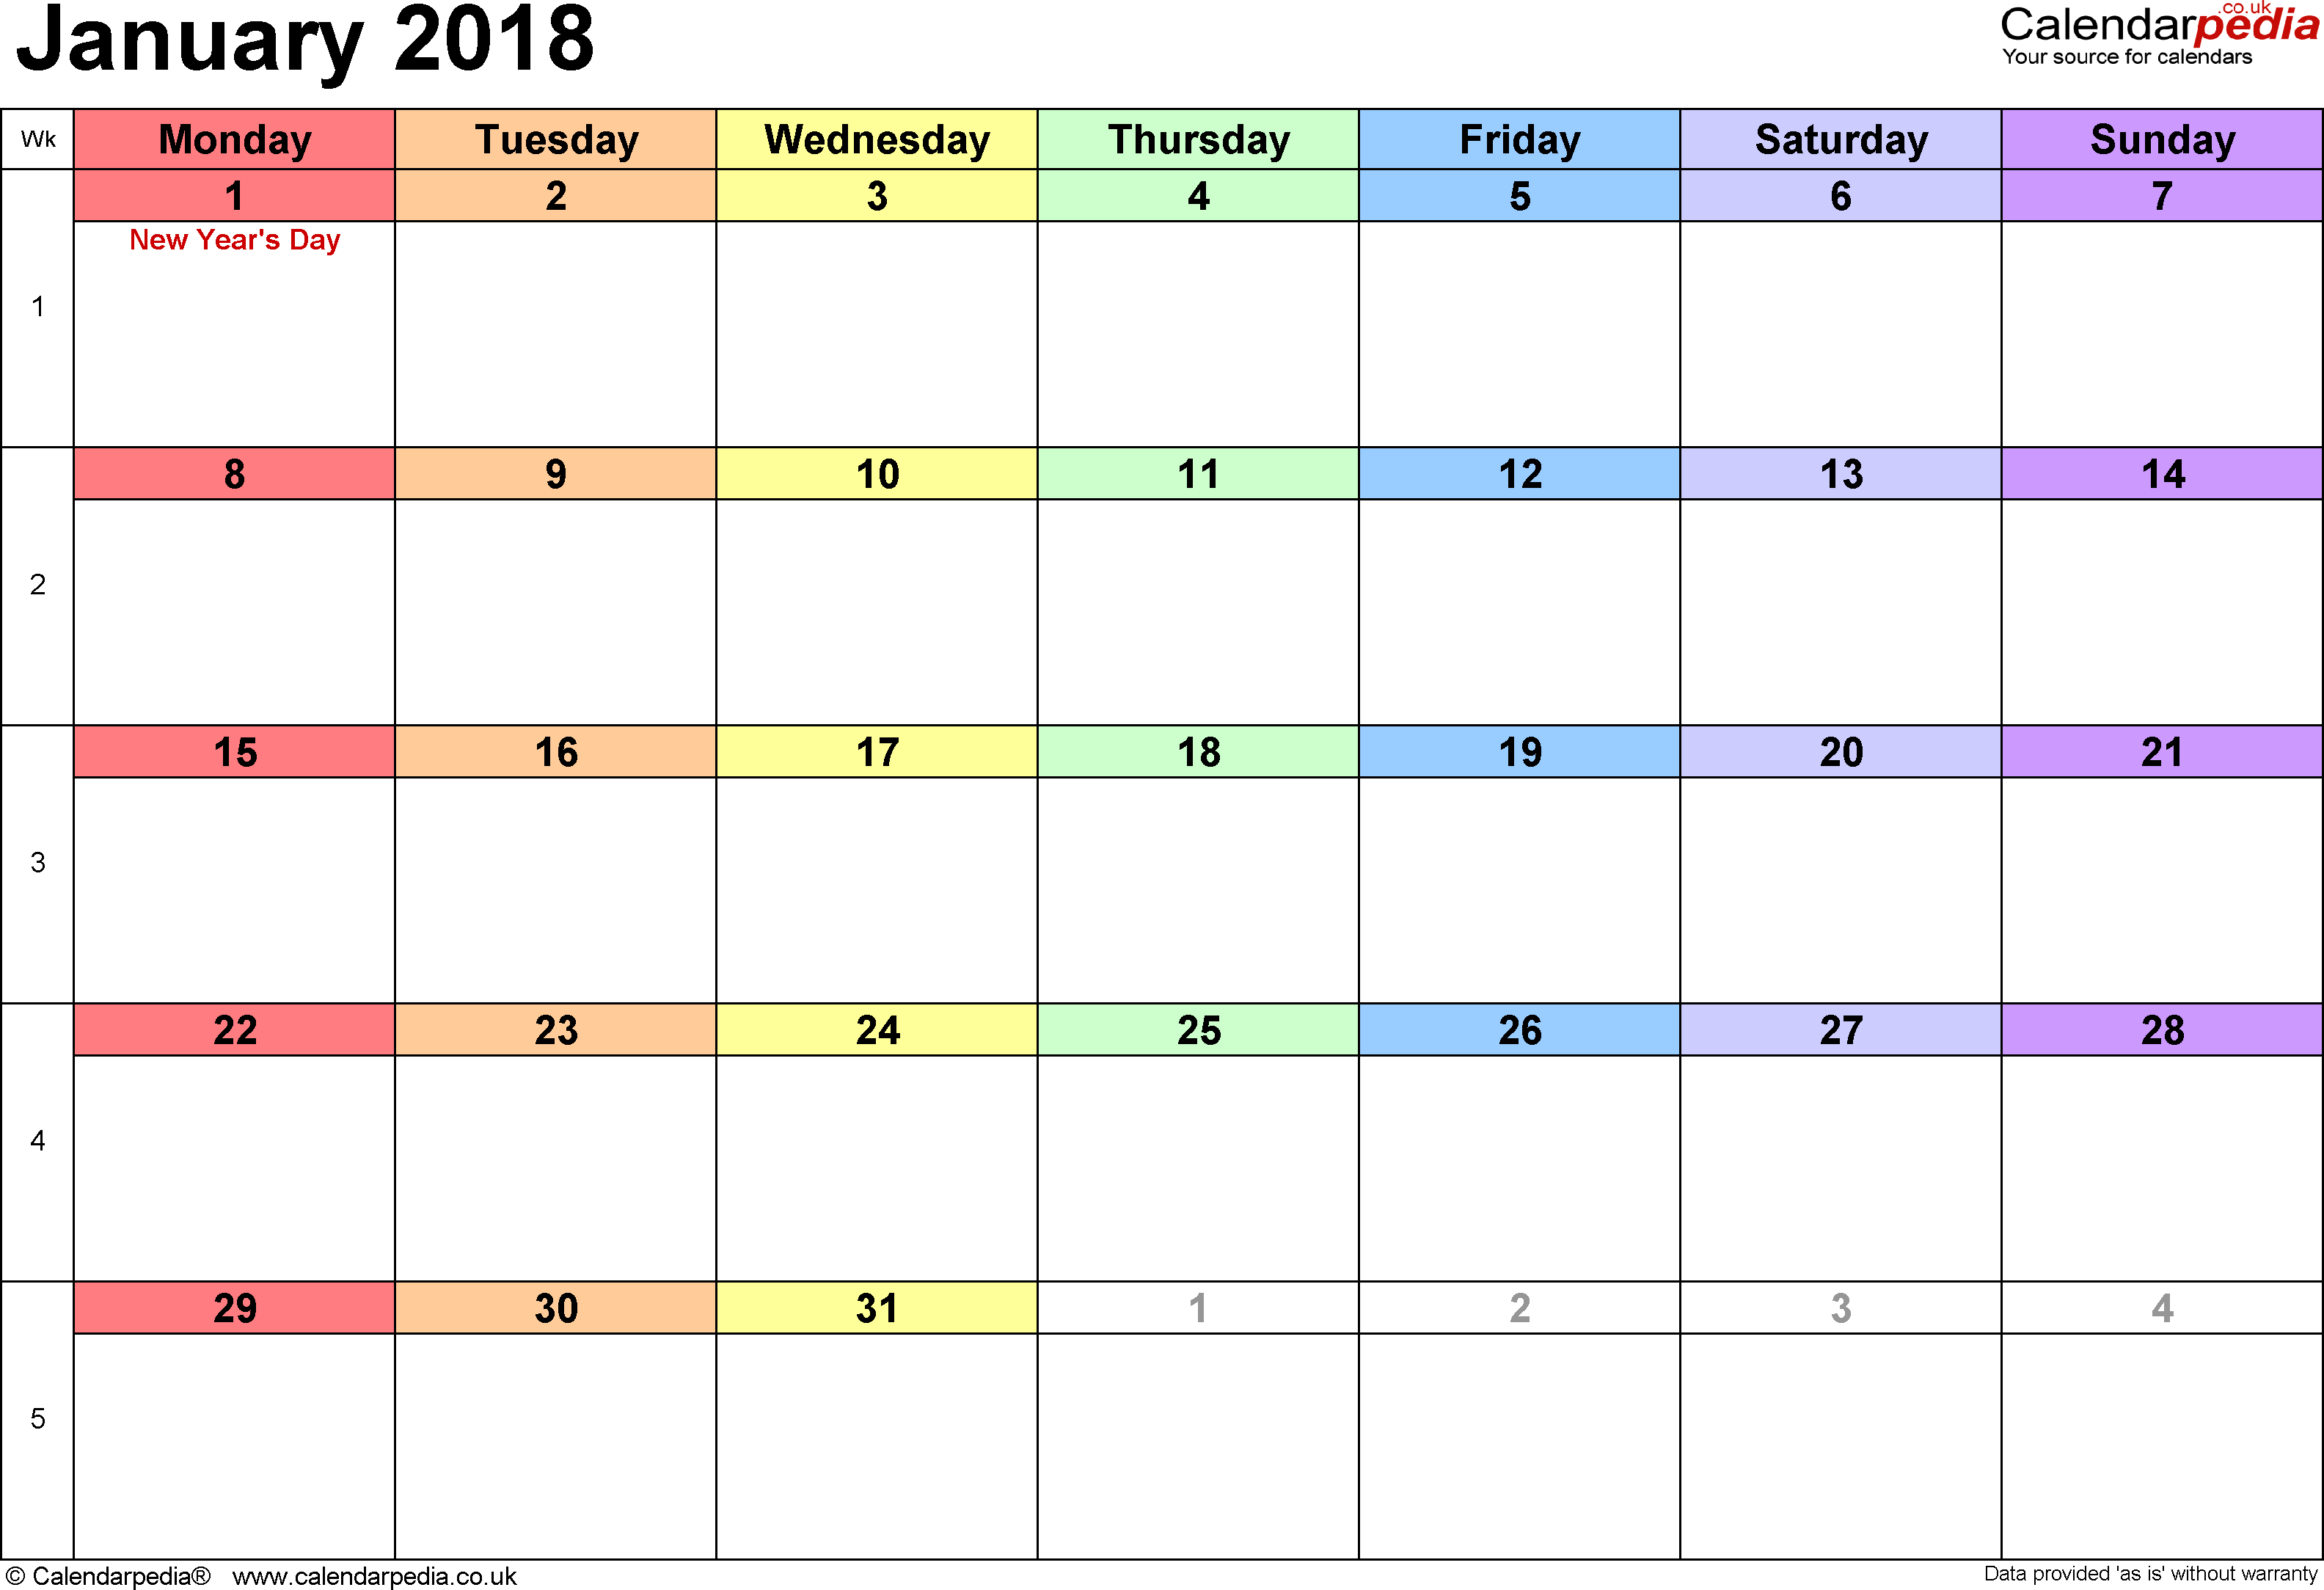 calendar january 2018 landscape orientation 1 page with uk bank holidays and week